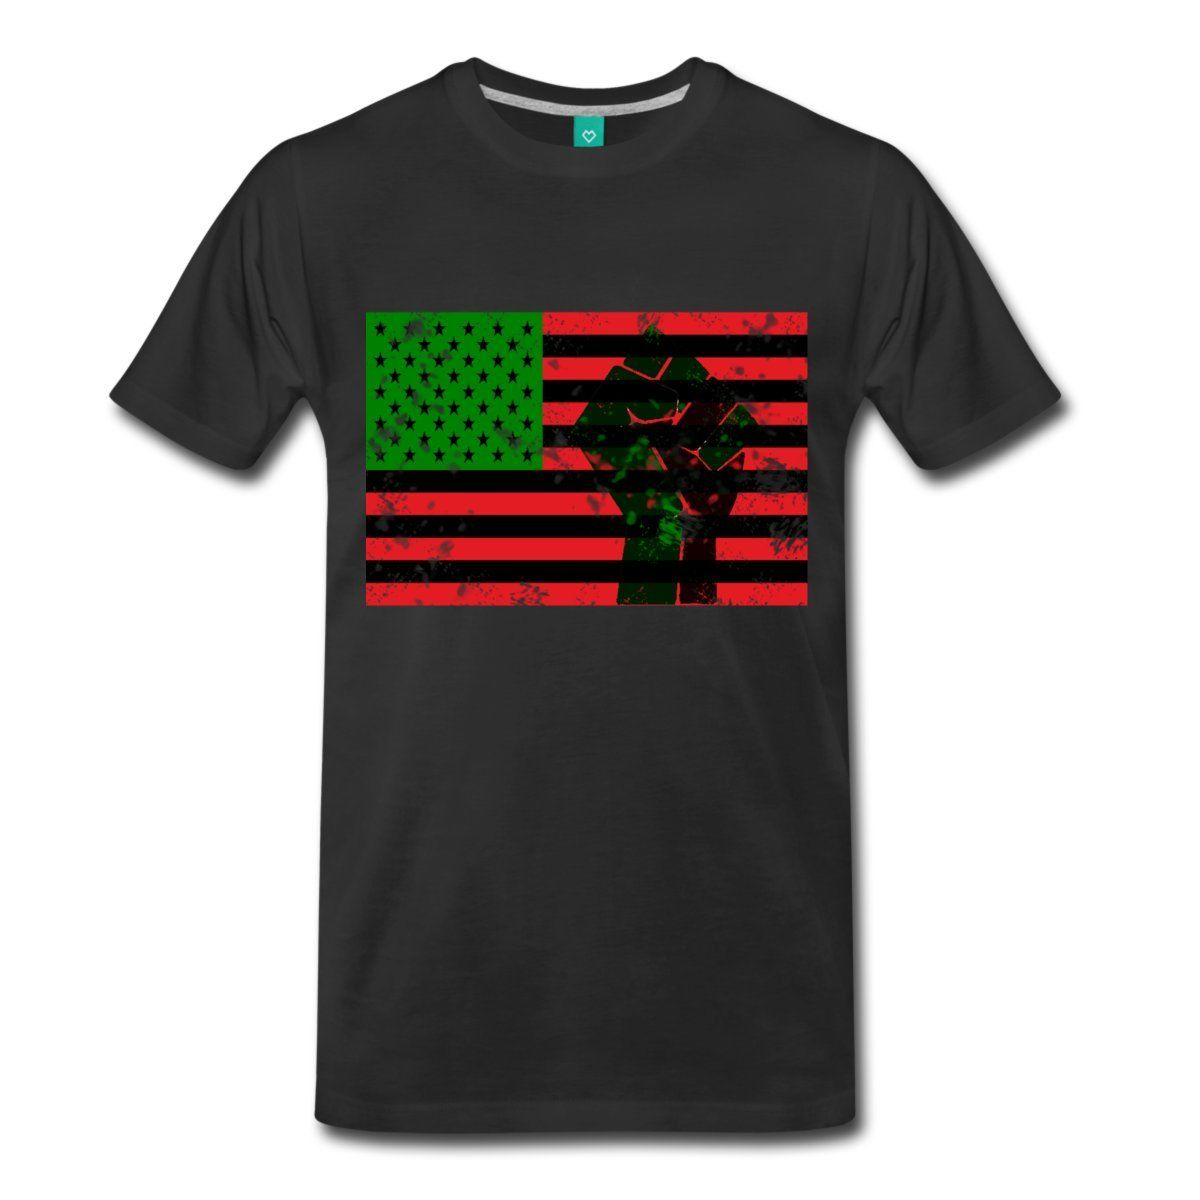 Pan African Flag With Fist Mens T-Shirt New Fashion Casual Cotton Short-Sleeve New Fashion T Shirt Graphic Letter